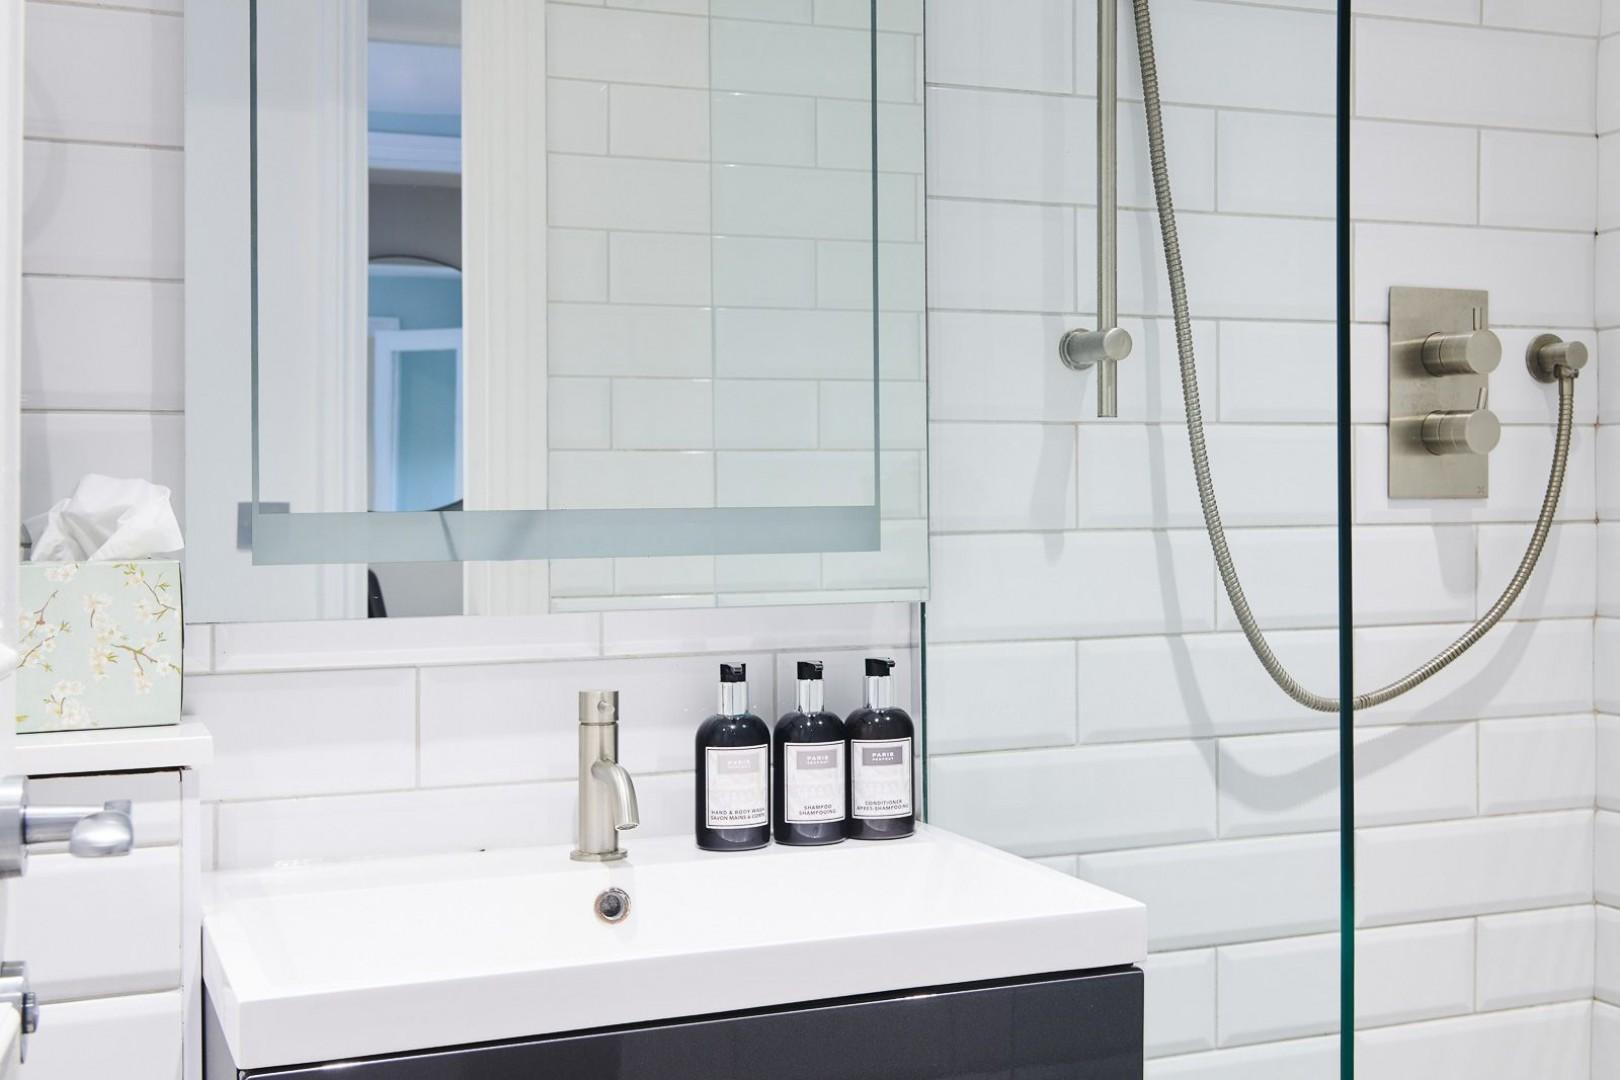 High-end finishes and products in the first floor bathroom